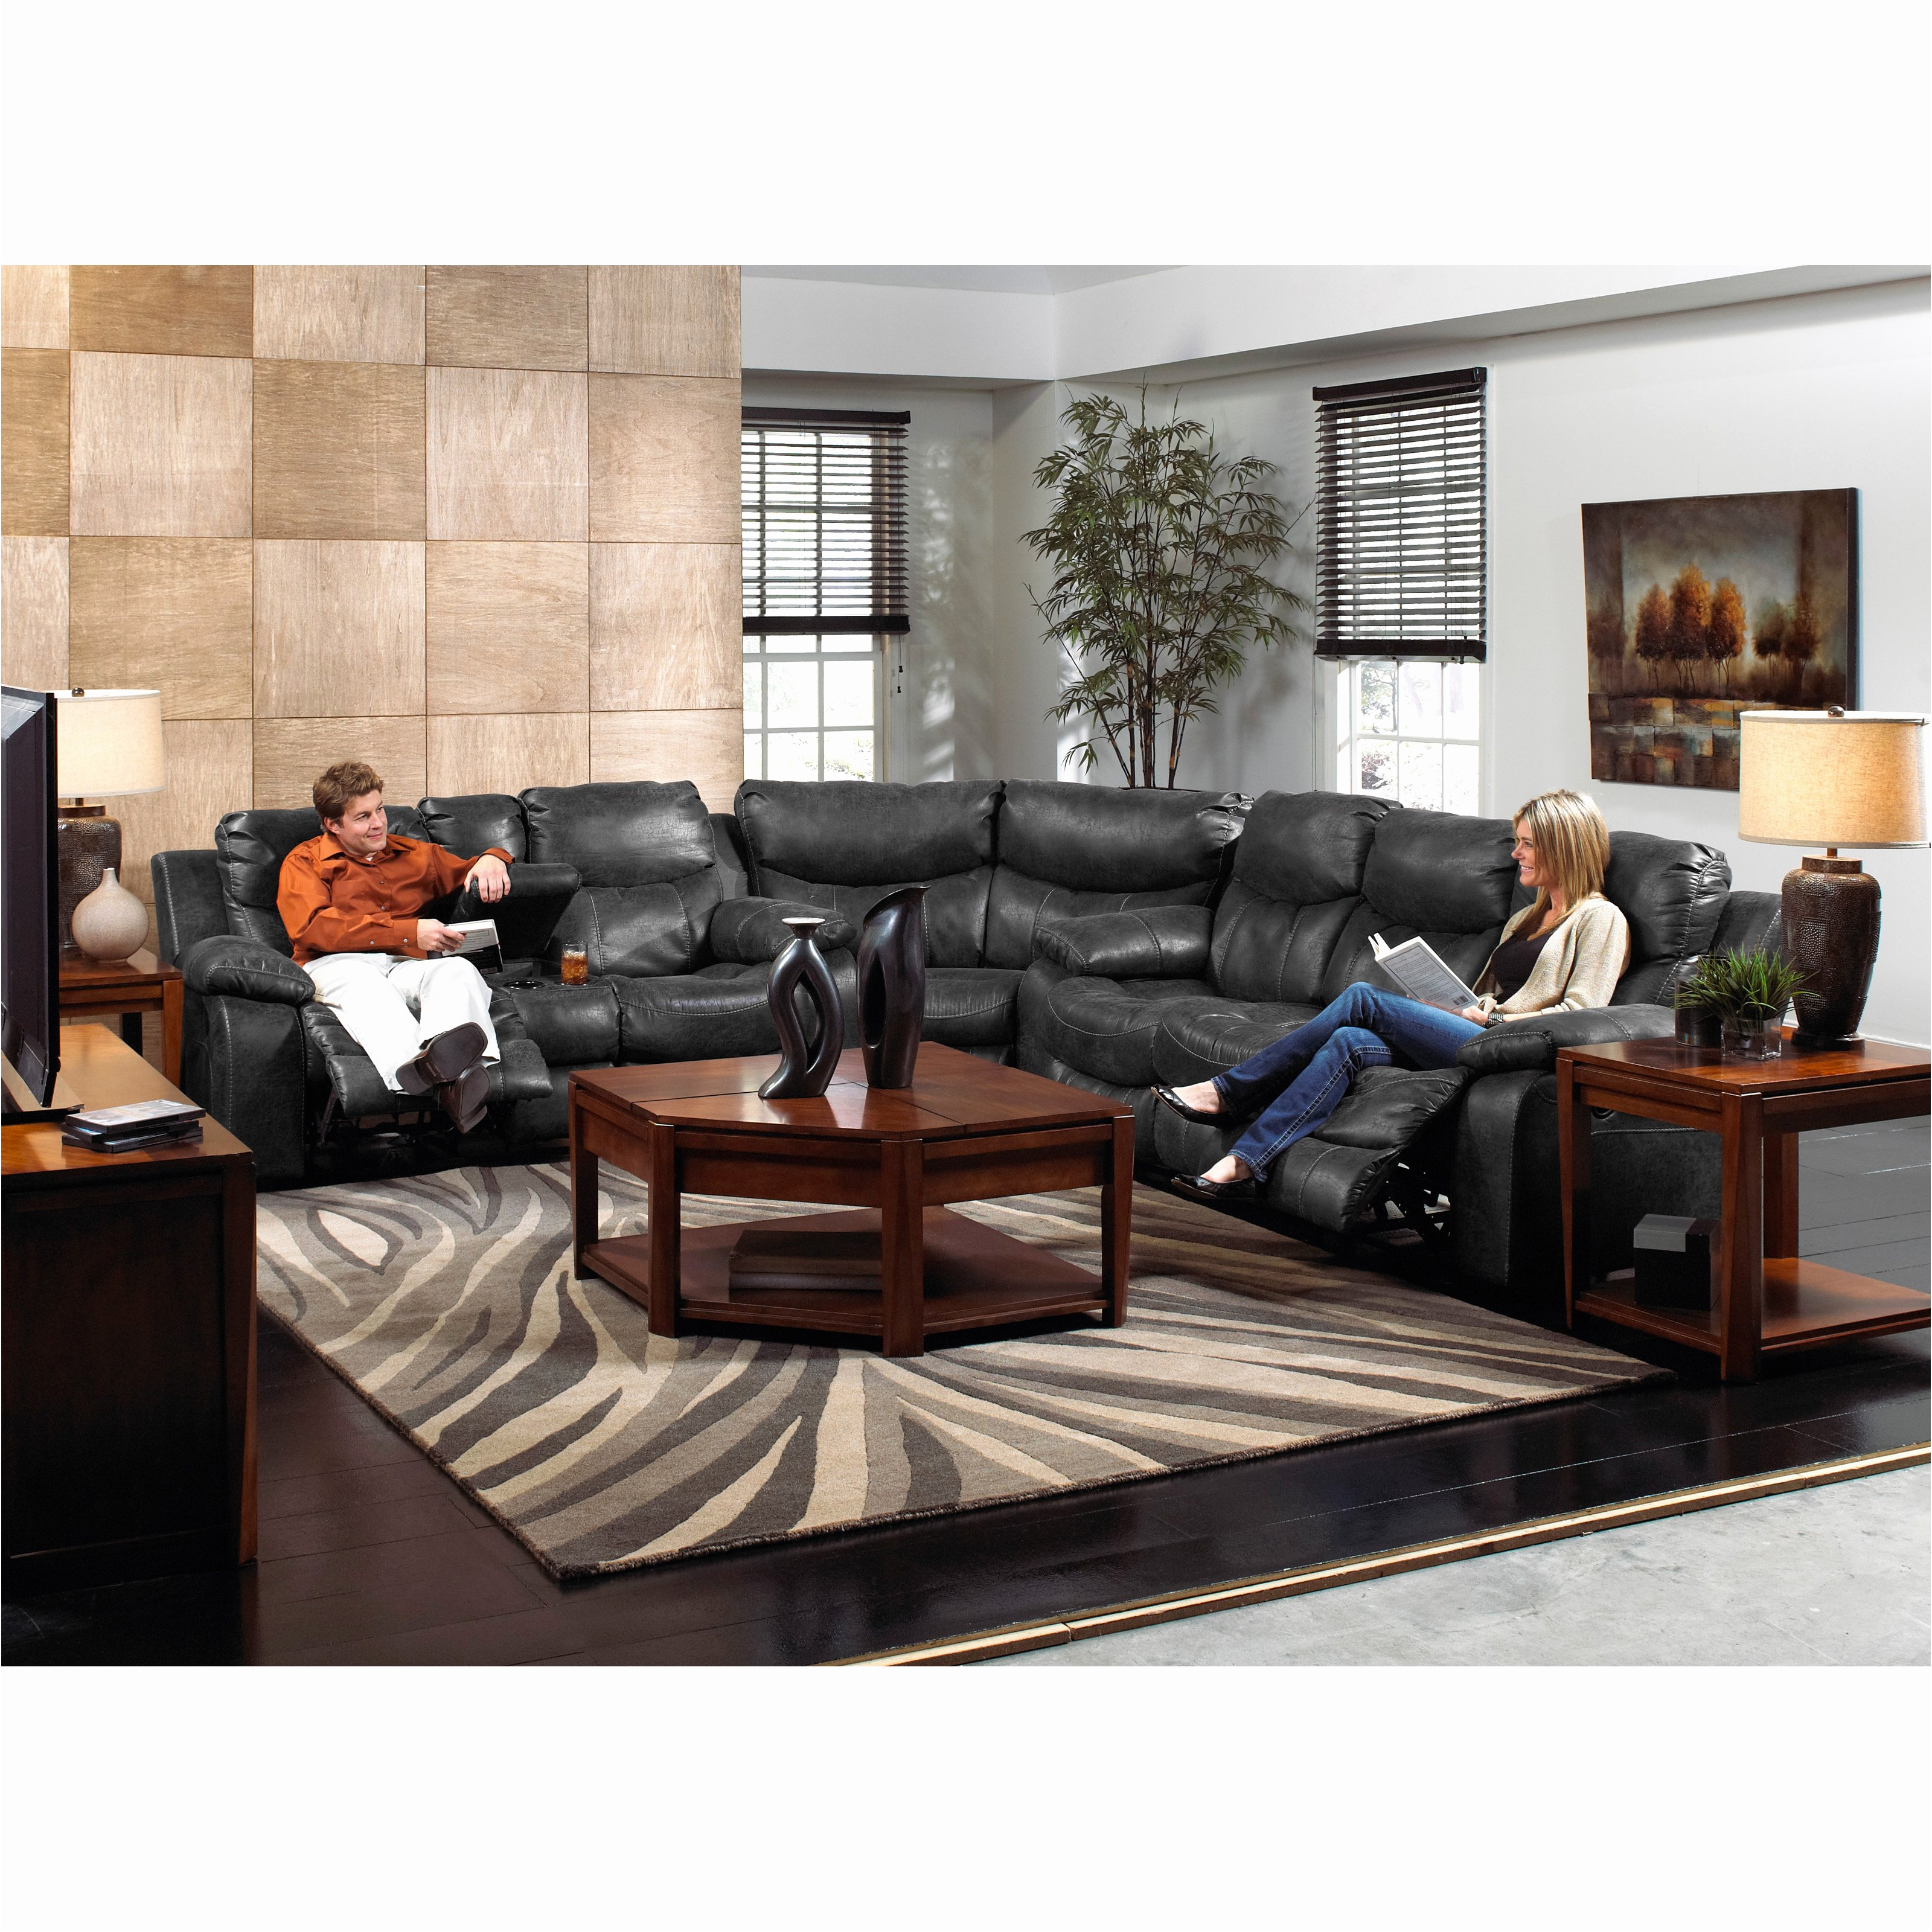 best white leather reclining sofa photograph-Lovely White Leather Reclining sofa Decoration